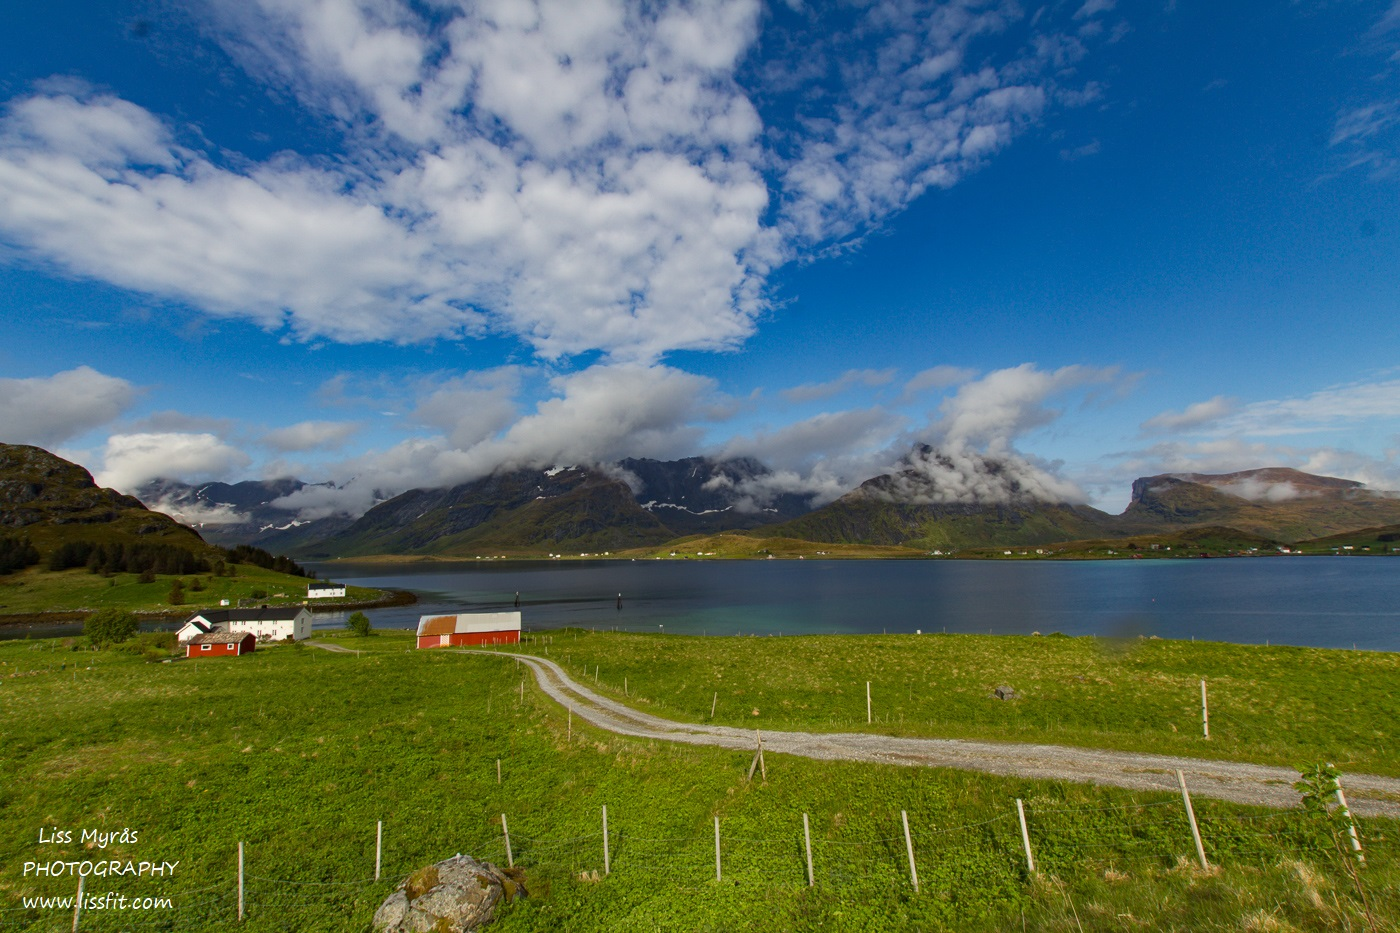 Lofoten landscape farm mountains fjords beautiful norway